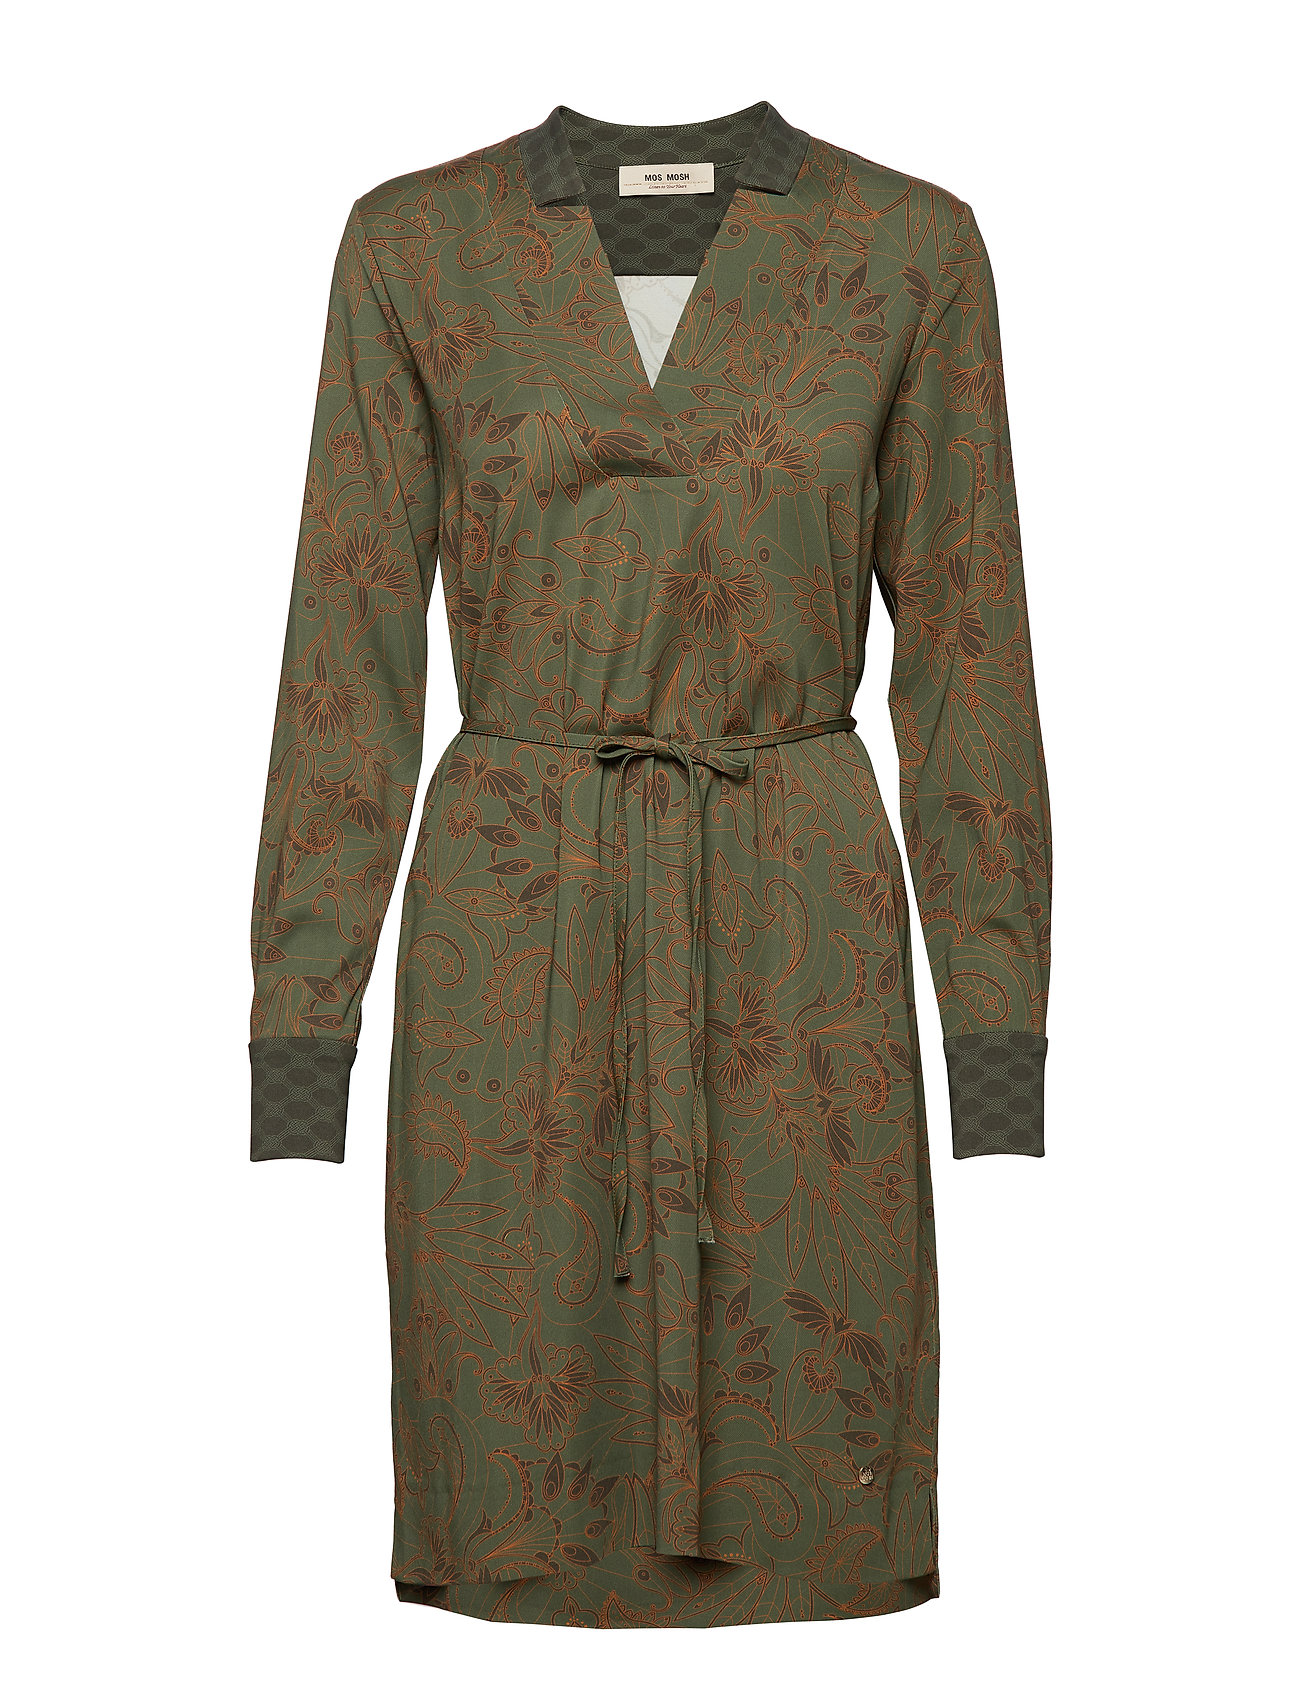 MOS MOSH Lipa Marrakech Dress - FOREST NIGHT PRINT